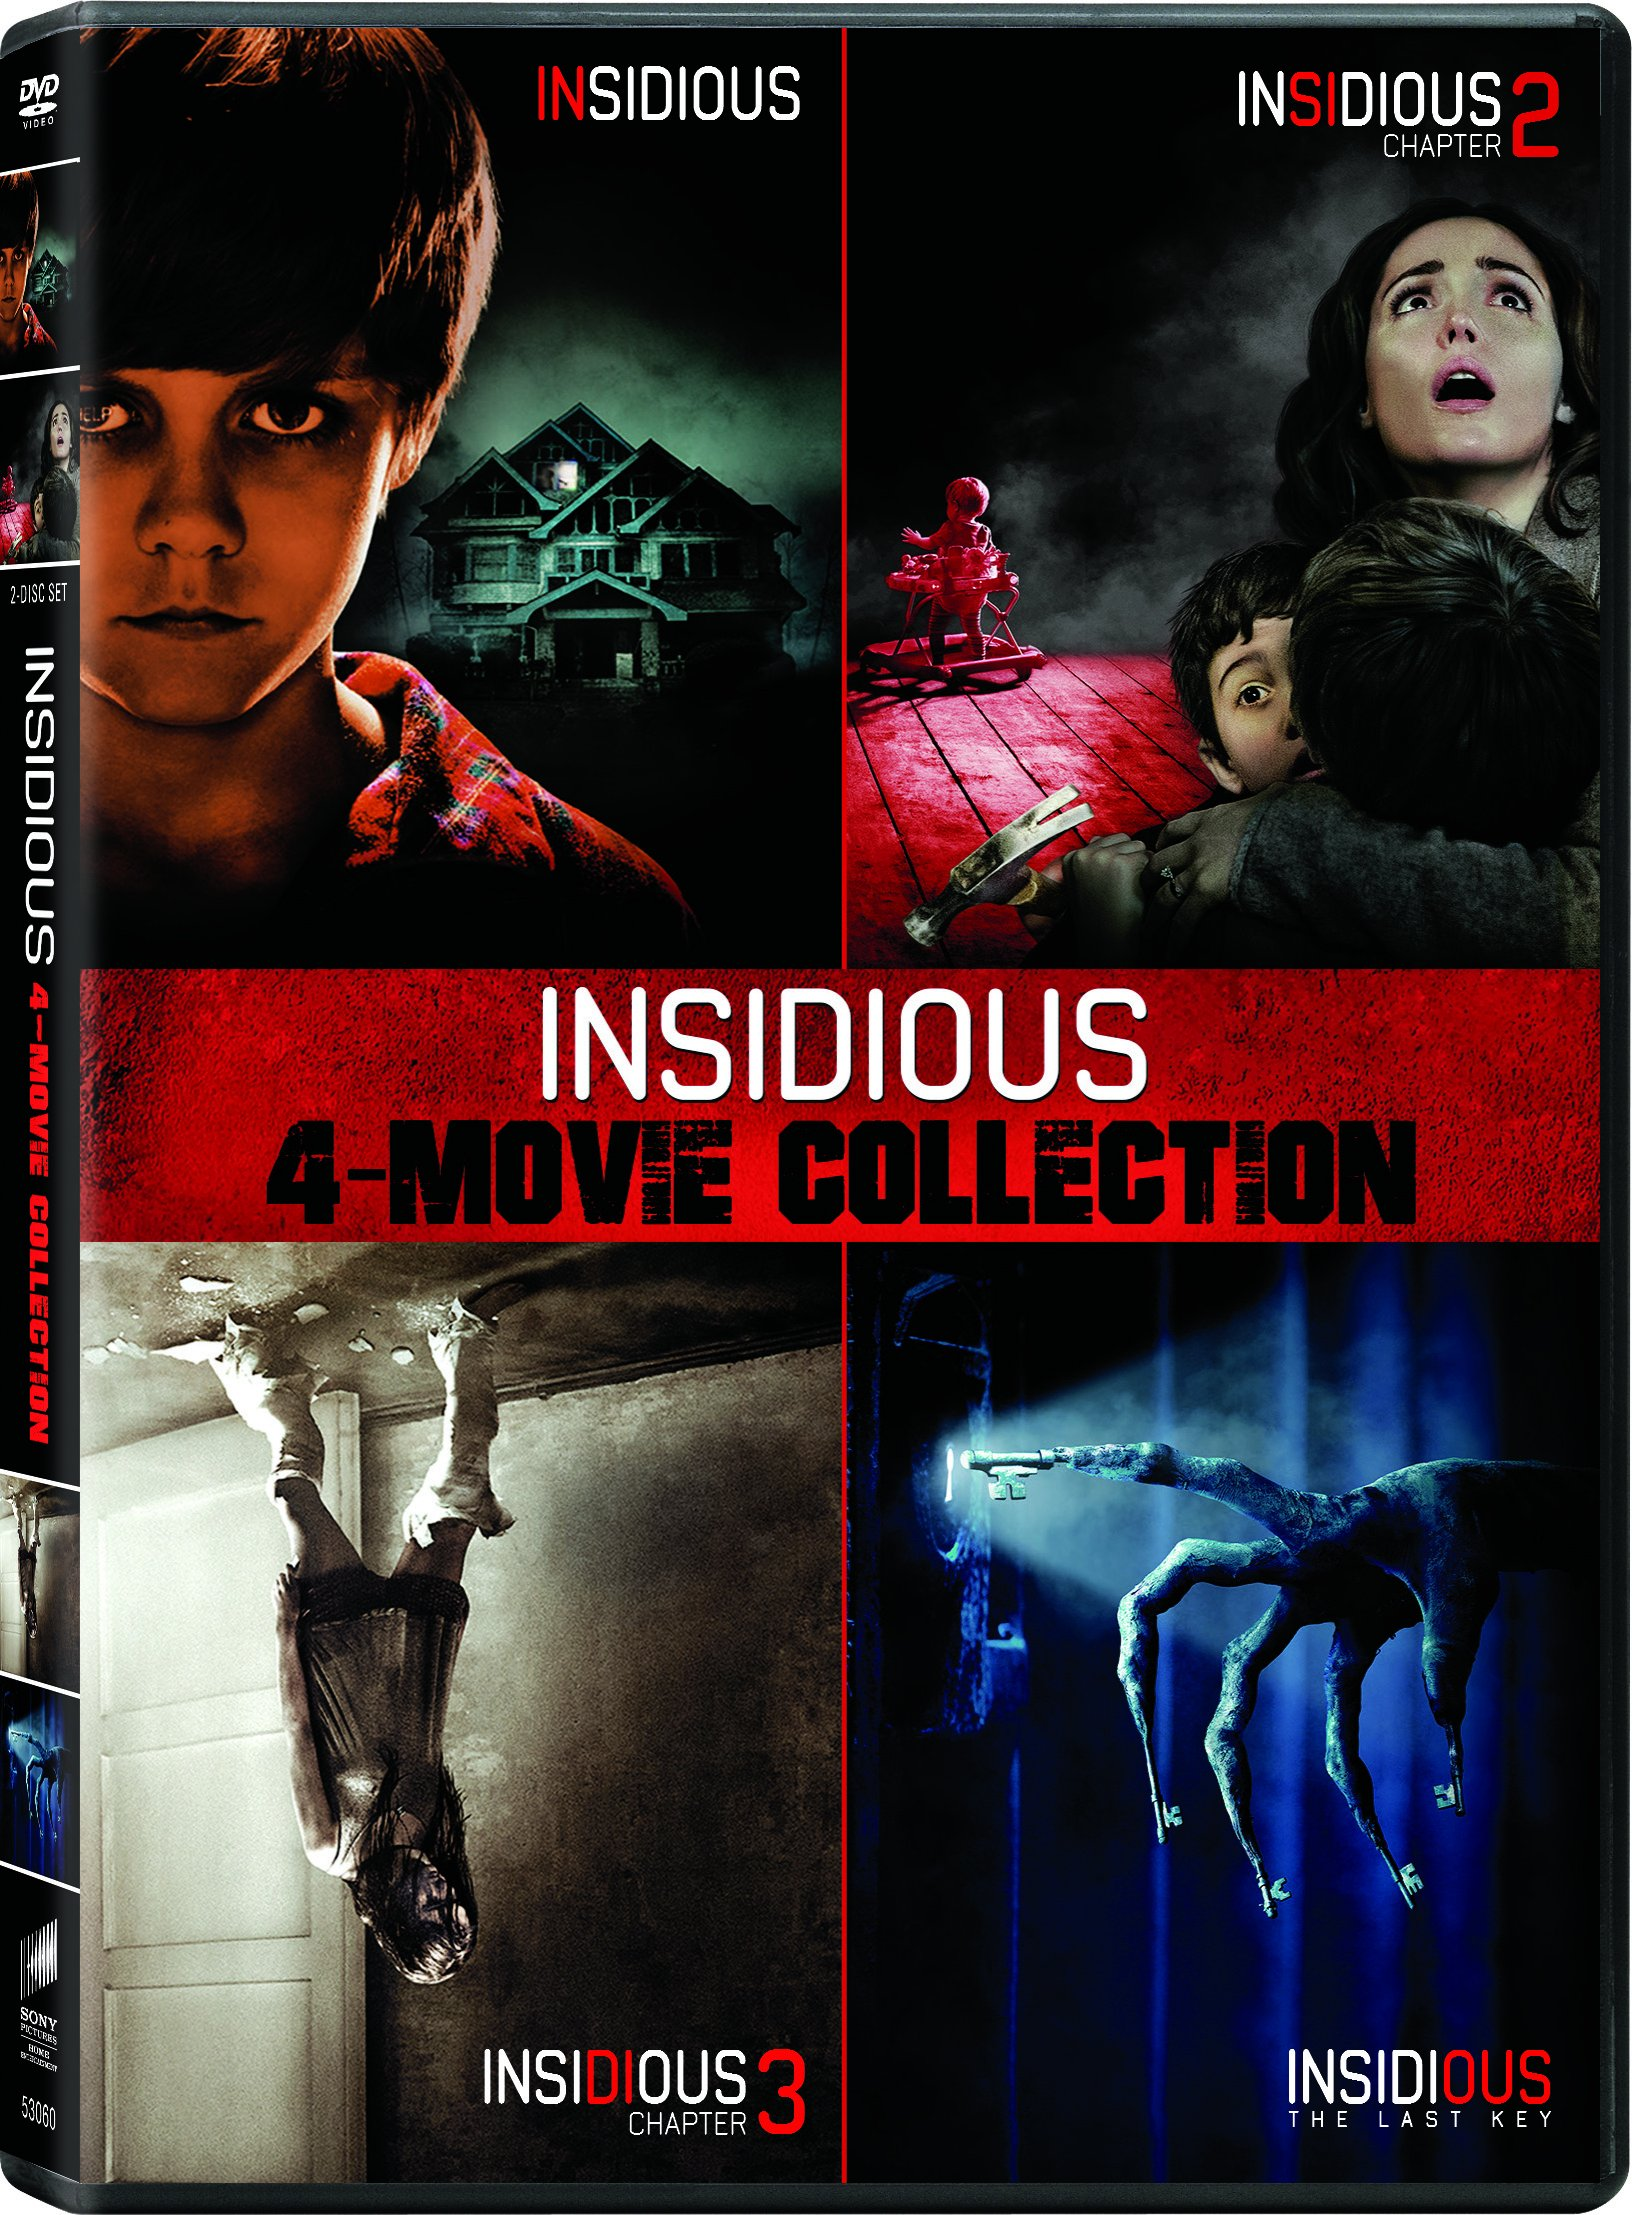 DVD : Insidious/ Insidious: Chapter 2/ Insidious: Chapter 3/ Insidious: Thelast Key (Boxed Set, Widescreen, Dolby, AC-3, Subtitled)